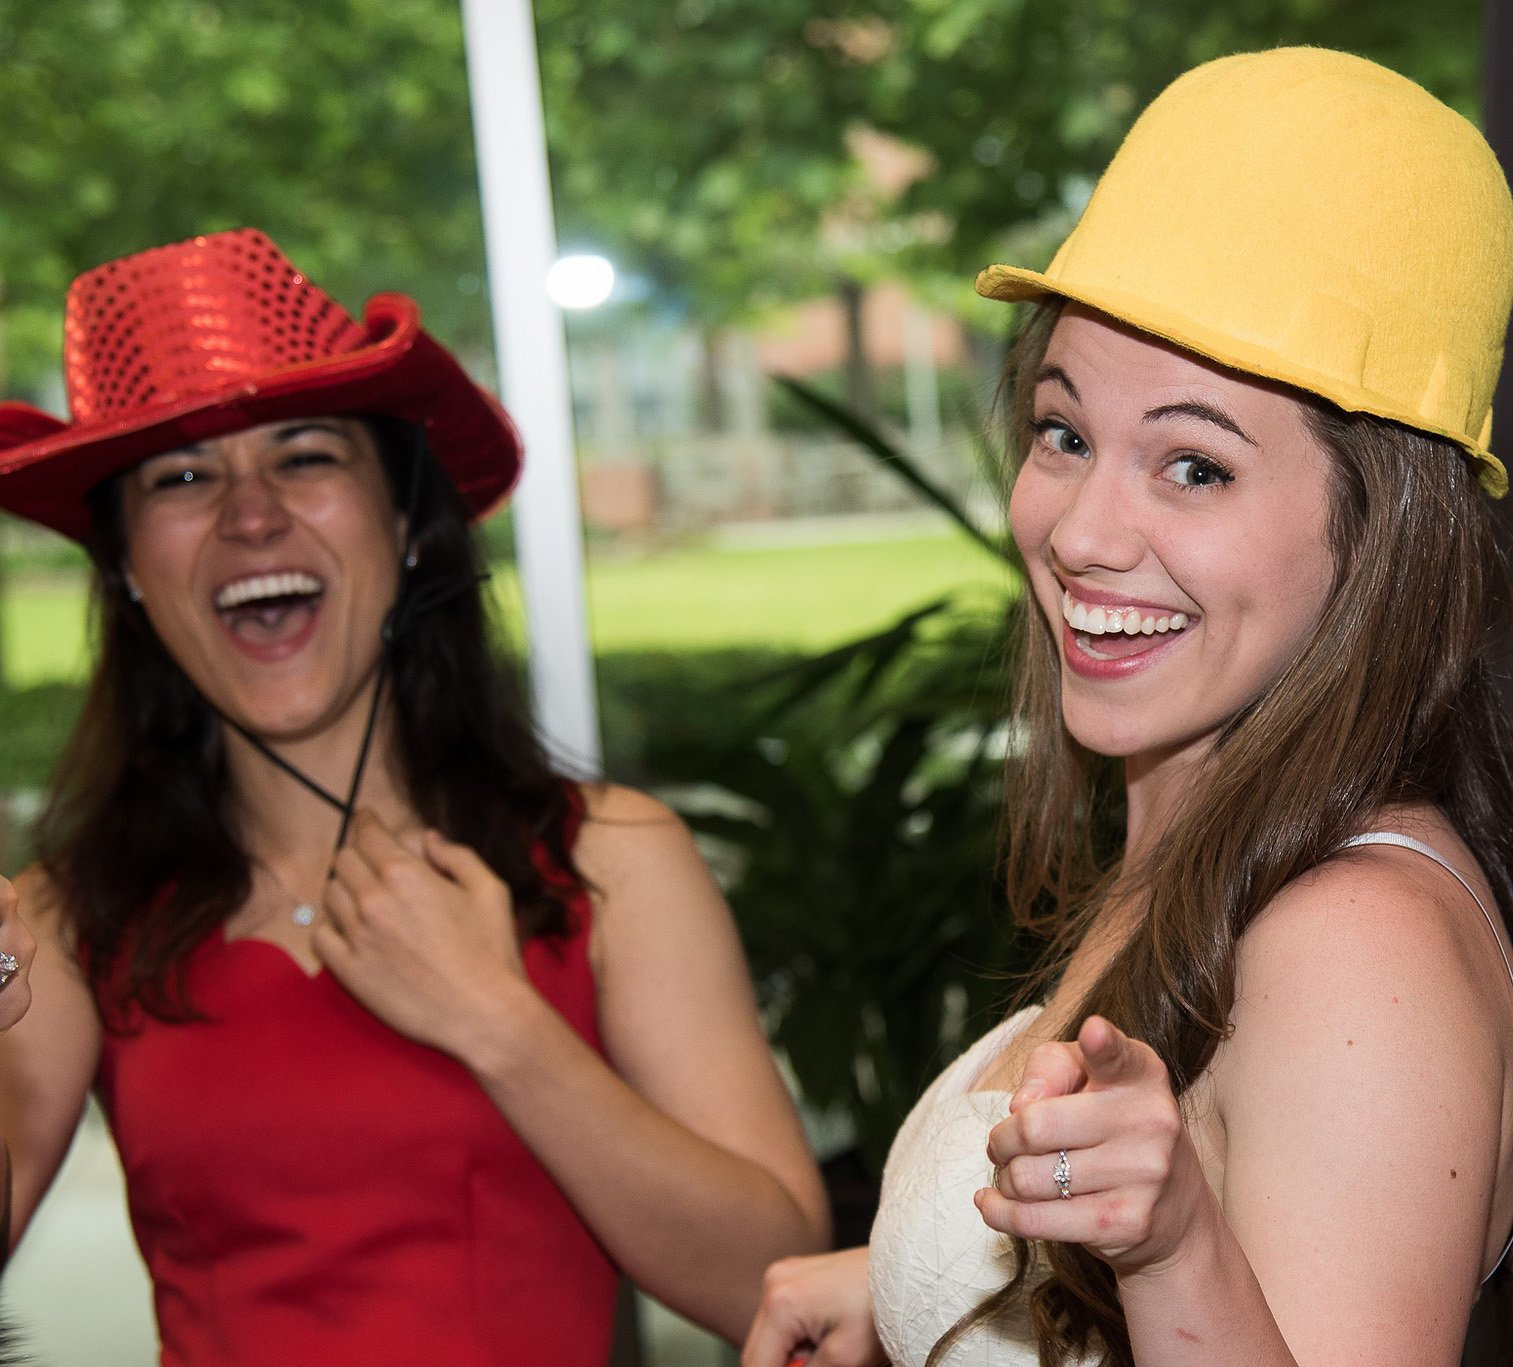 UTSD students Lara Raney (left) and Elizabeth Scott share a laugh at the 2018 Senior Awards Banquet in April. Photo by Brian Schnupp.